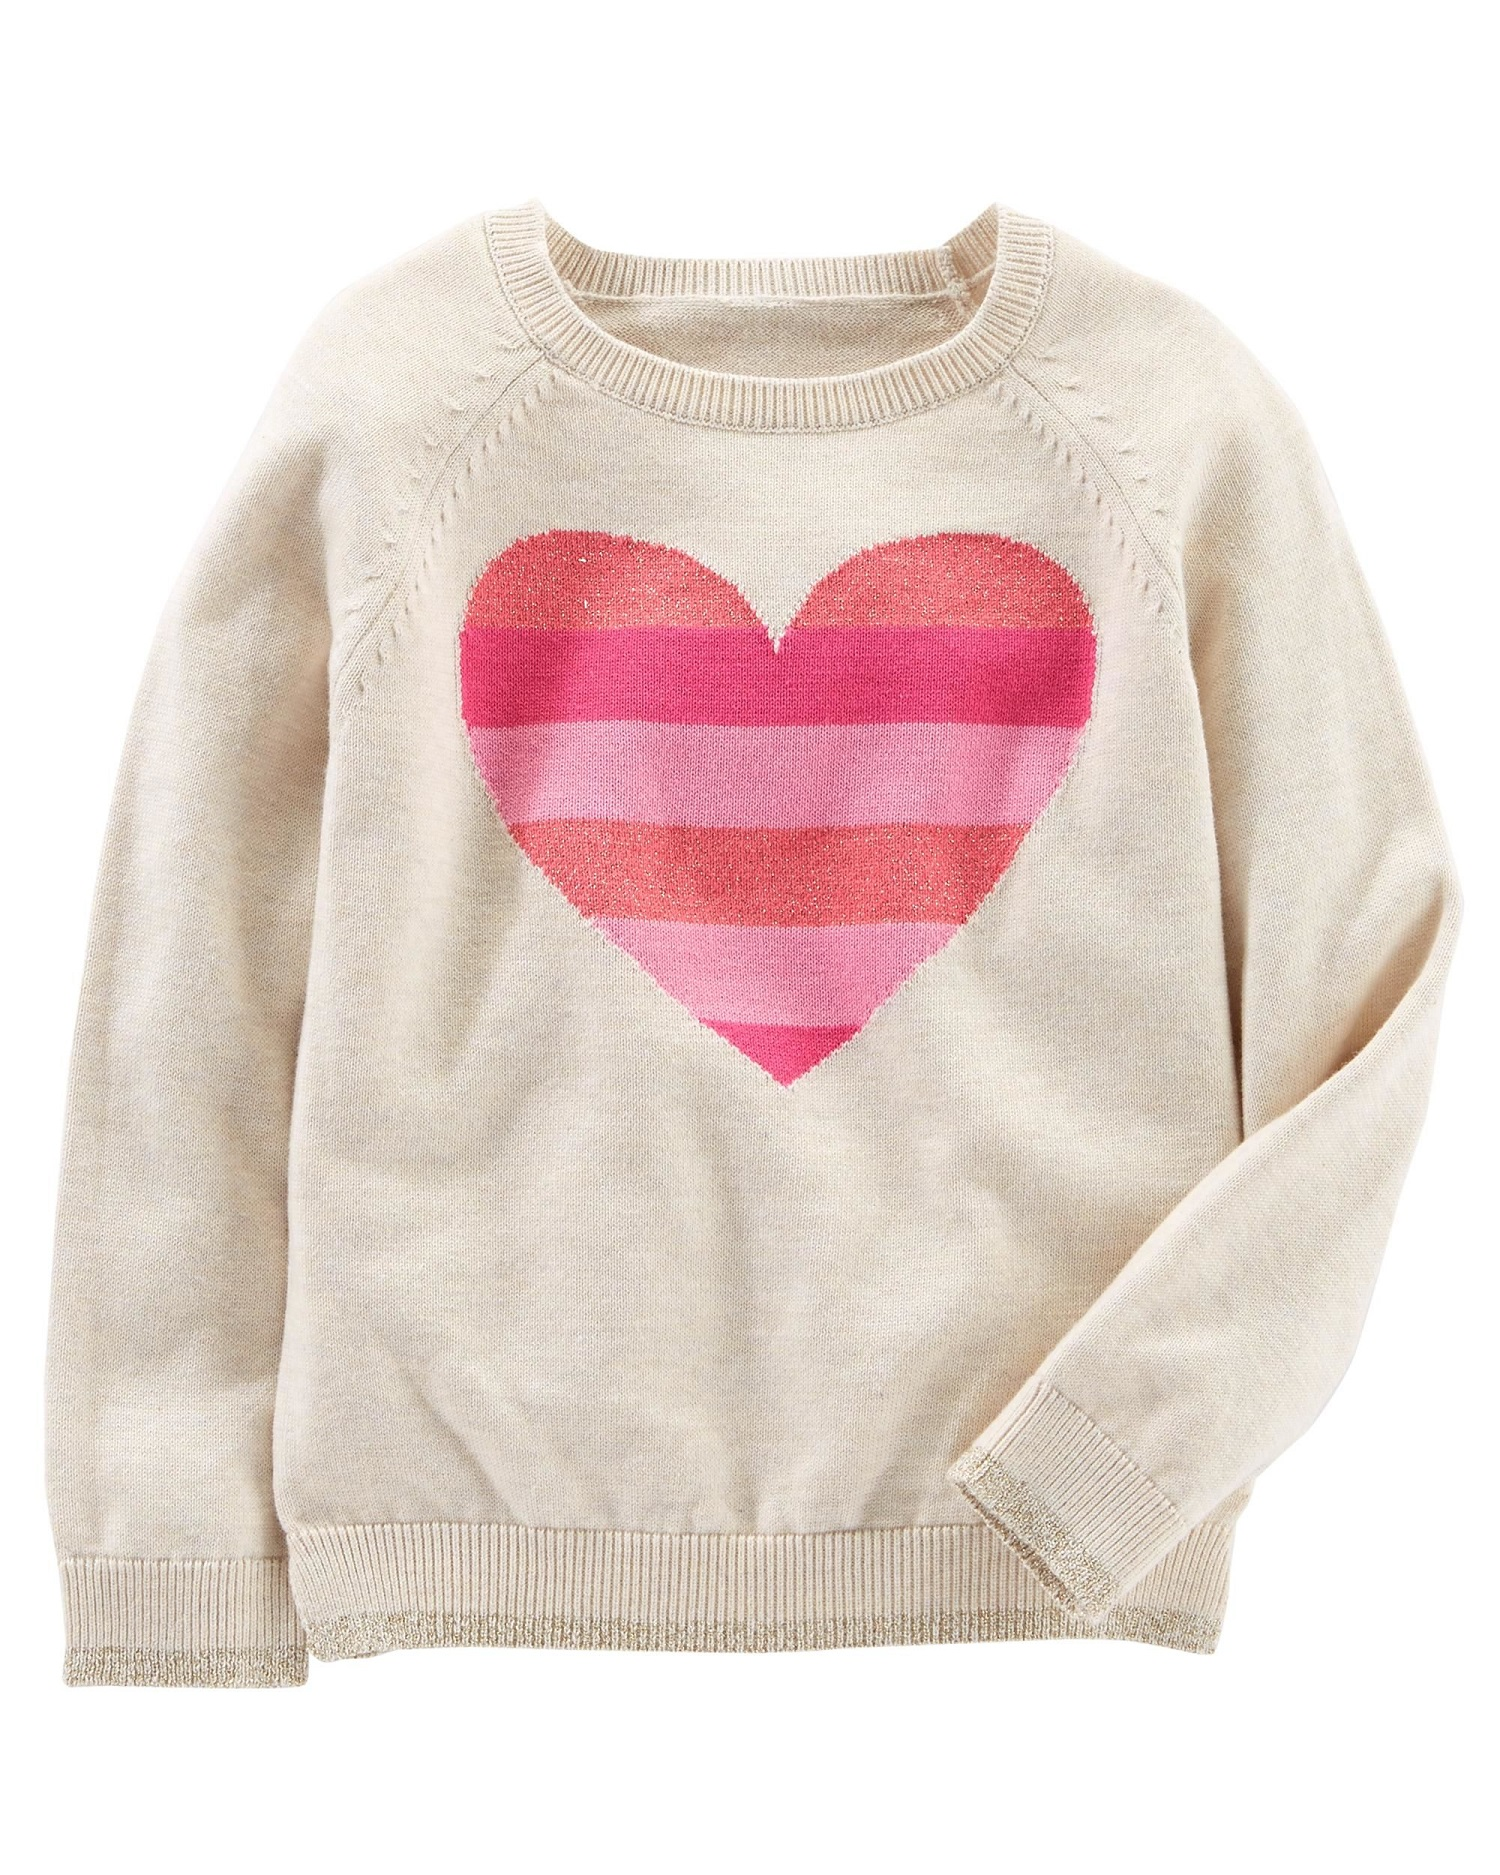 OshKosh B'gosh Baby Girls' Cozy Heart Sweater, 9 Months